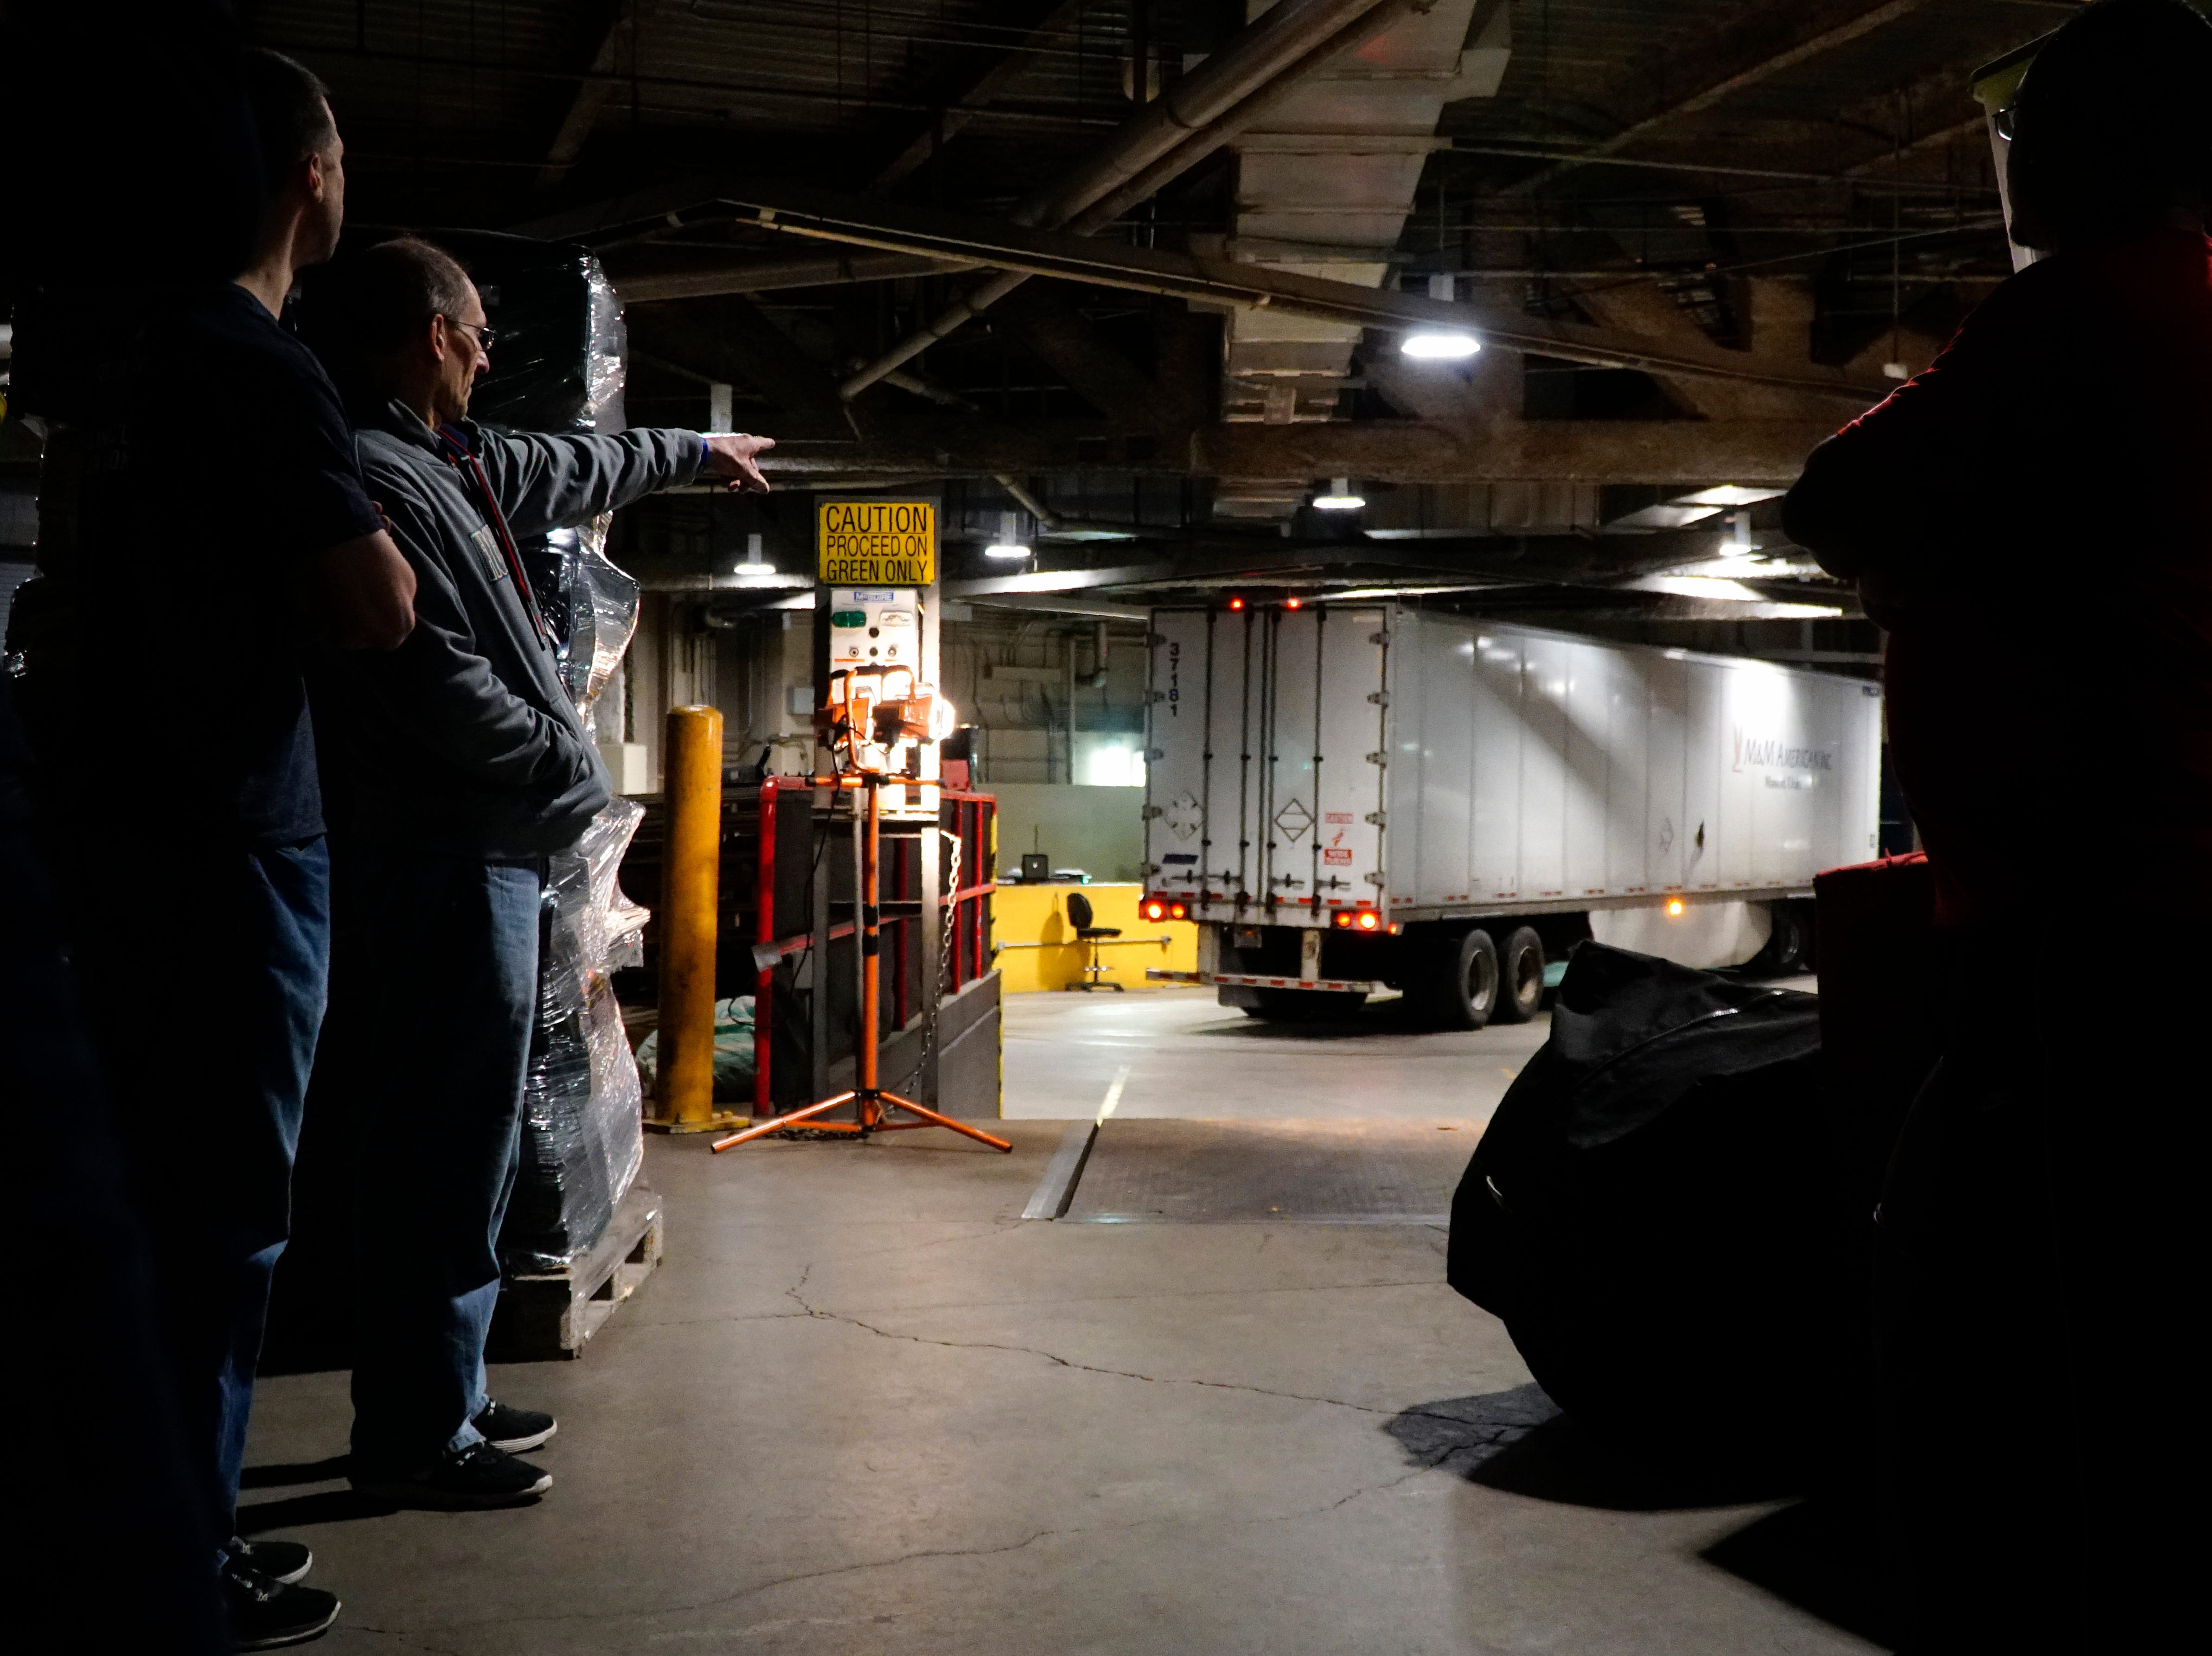 Workers wait for The Cincinnati Reds' tractor-trailer to back into the loading bay beneath Great American Ball Park, Tuesday, Feb. 5, 2019. After loading, the truck will travel 1,825 miles from Cincinnati to the Reds Development Complex in Phoenix, Ariz.